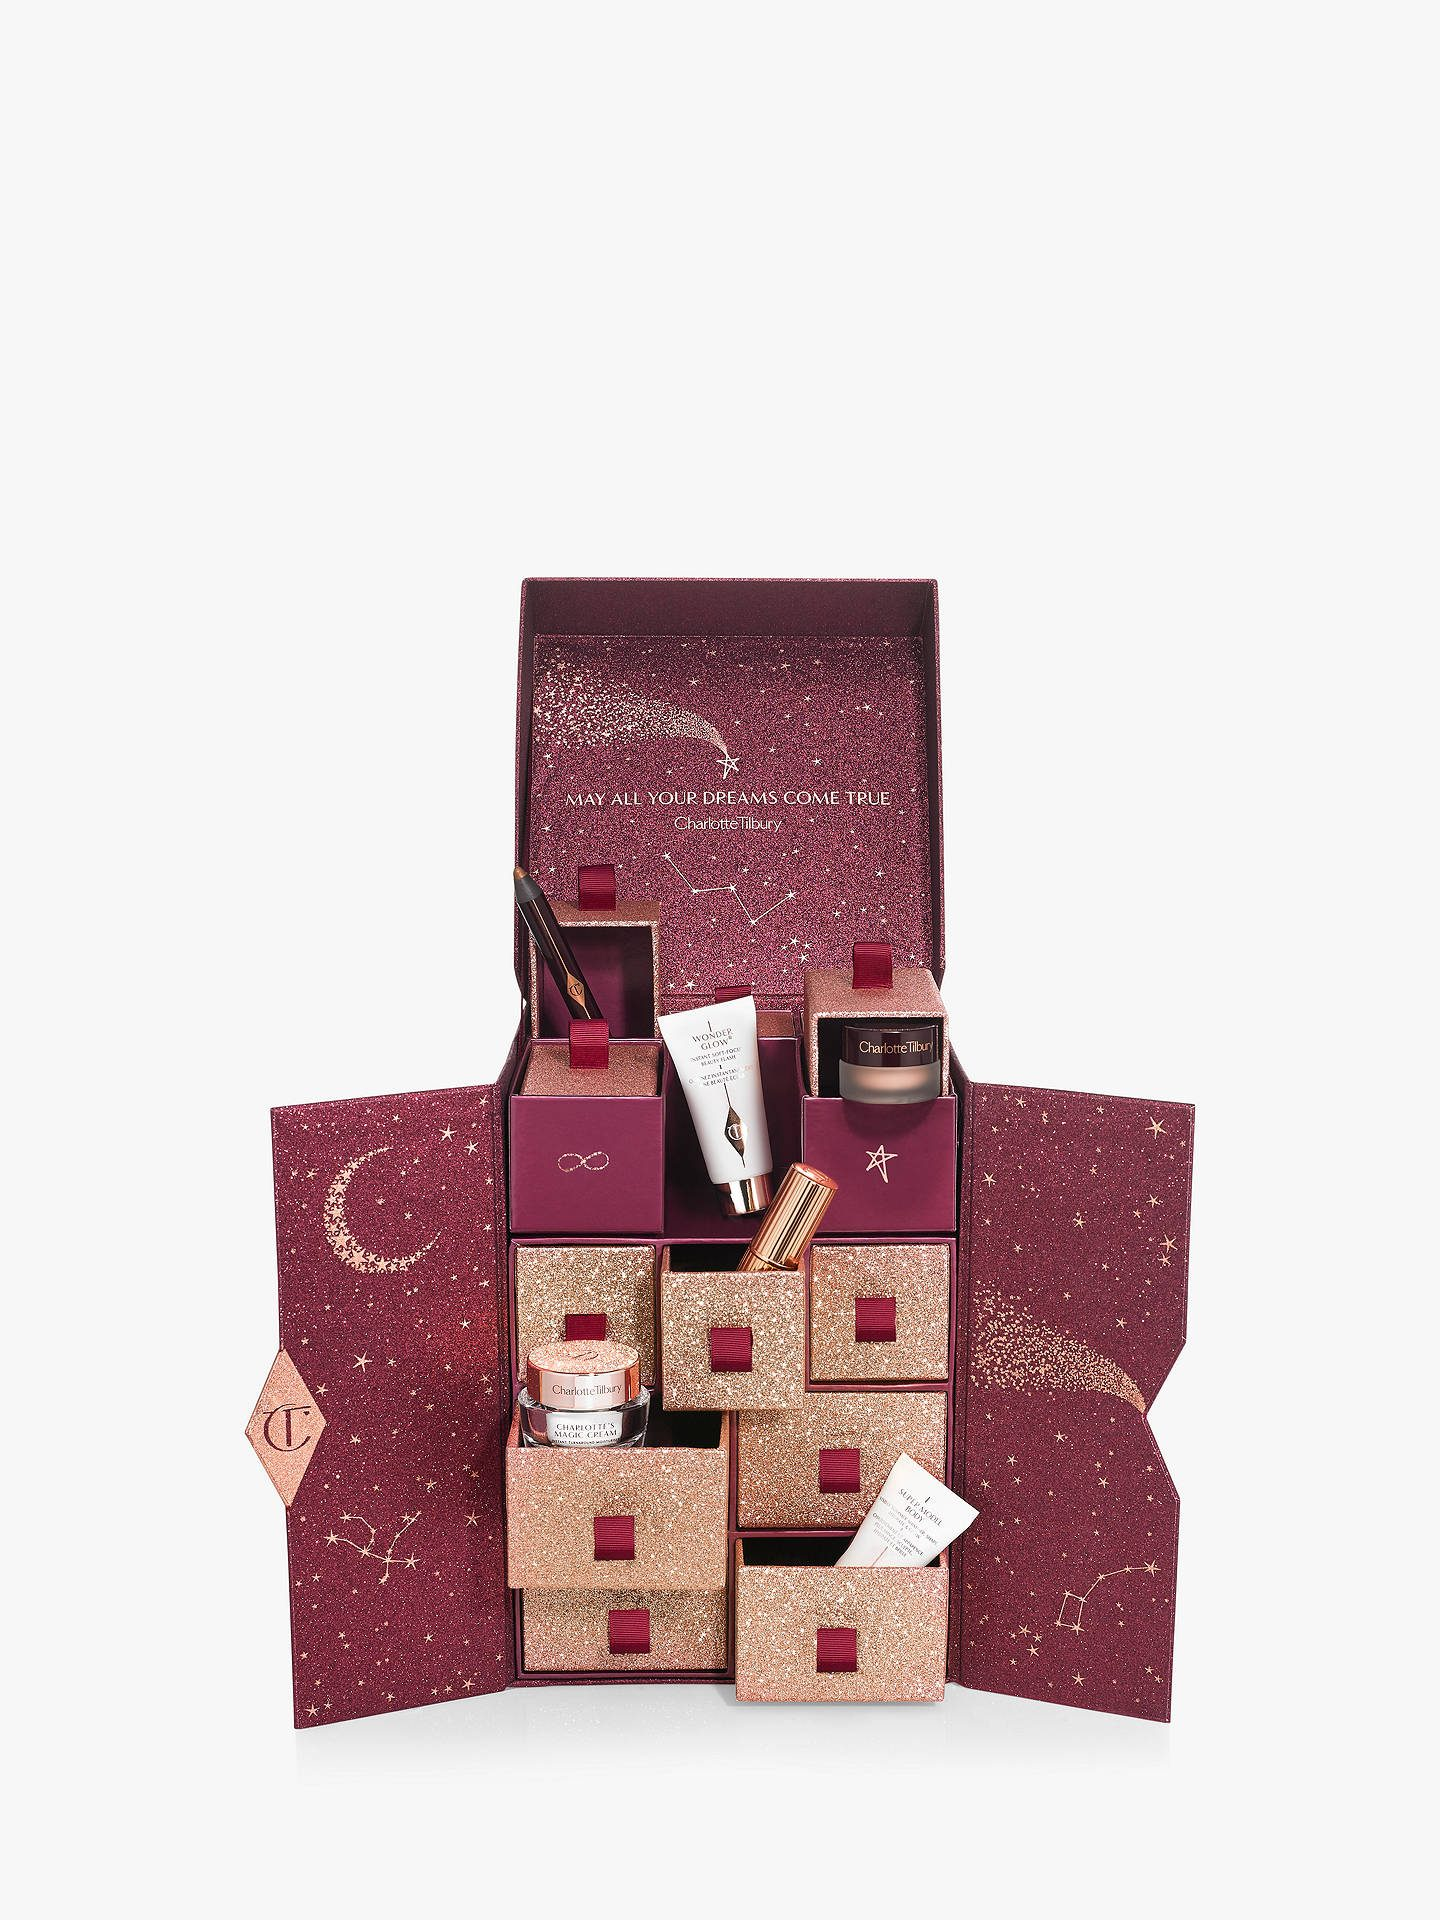 The best cruelty free beauty advent calendars